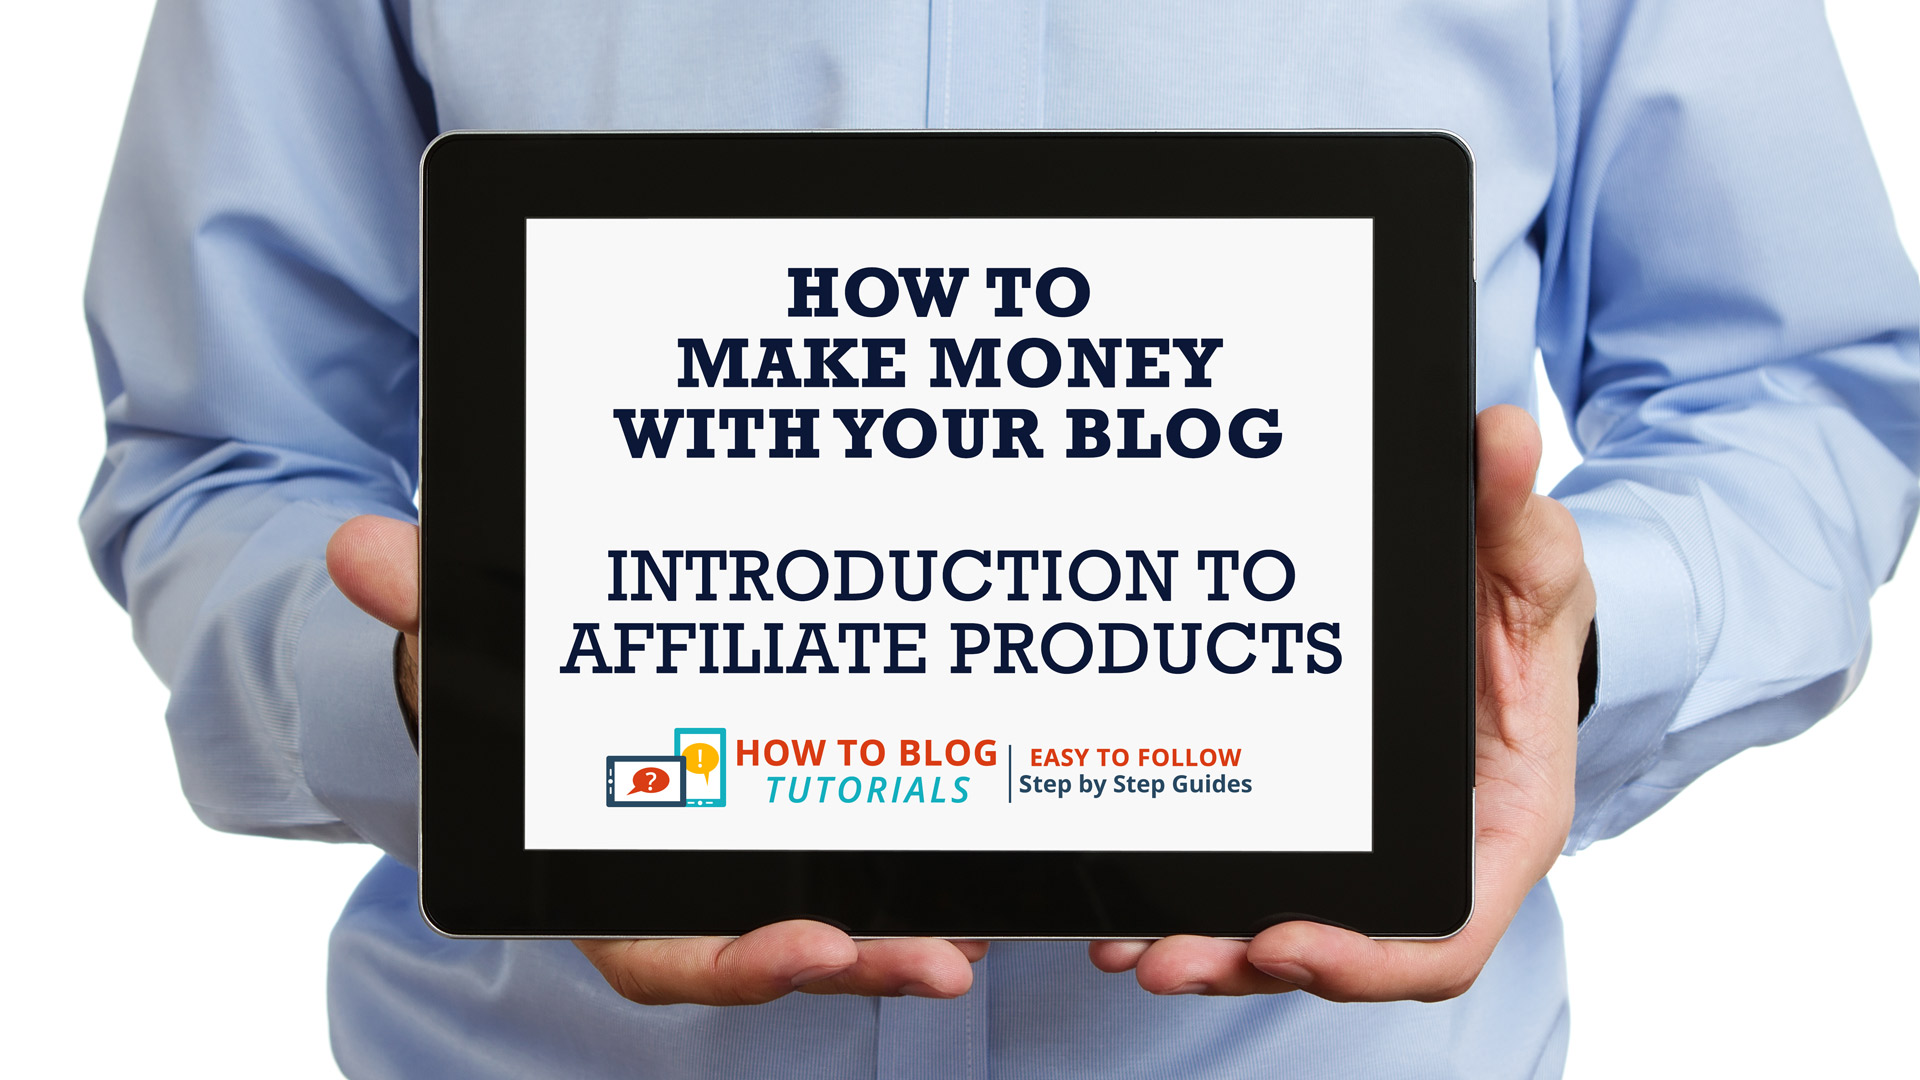 money-blog-affiliate-intro-products